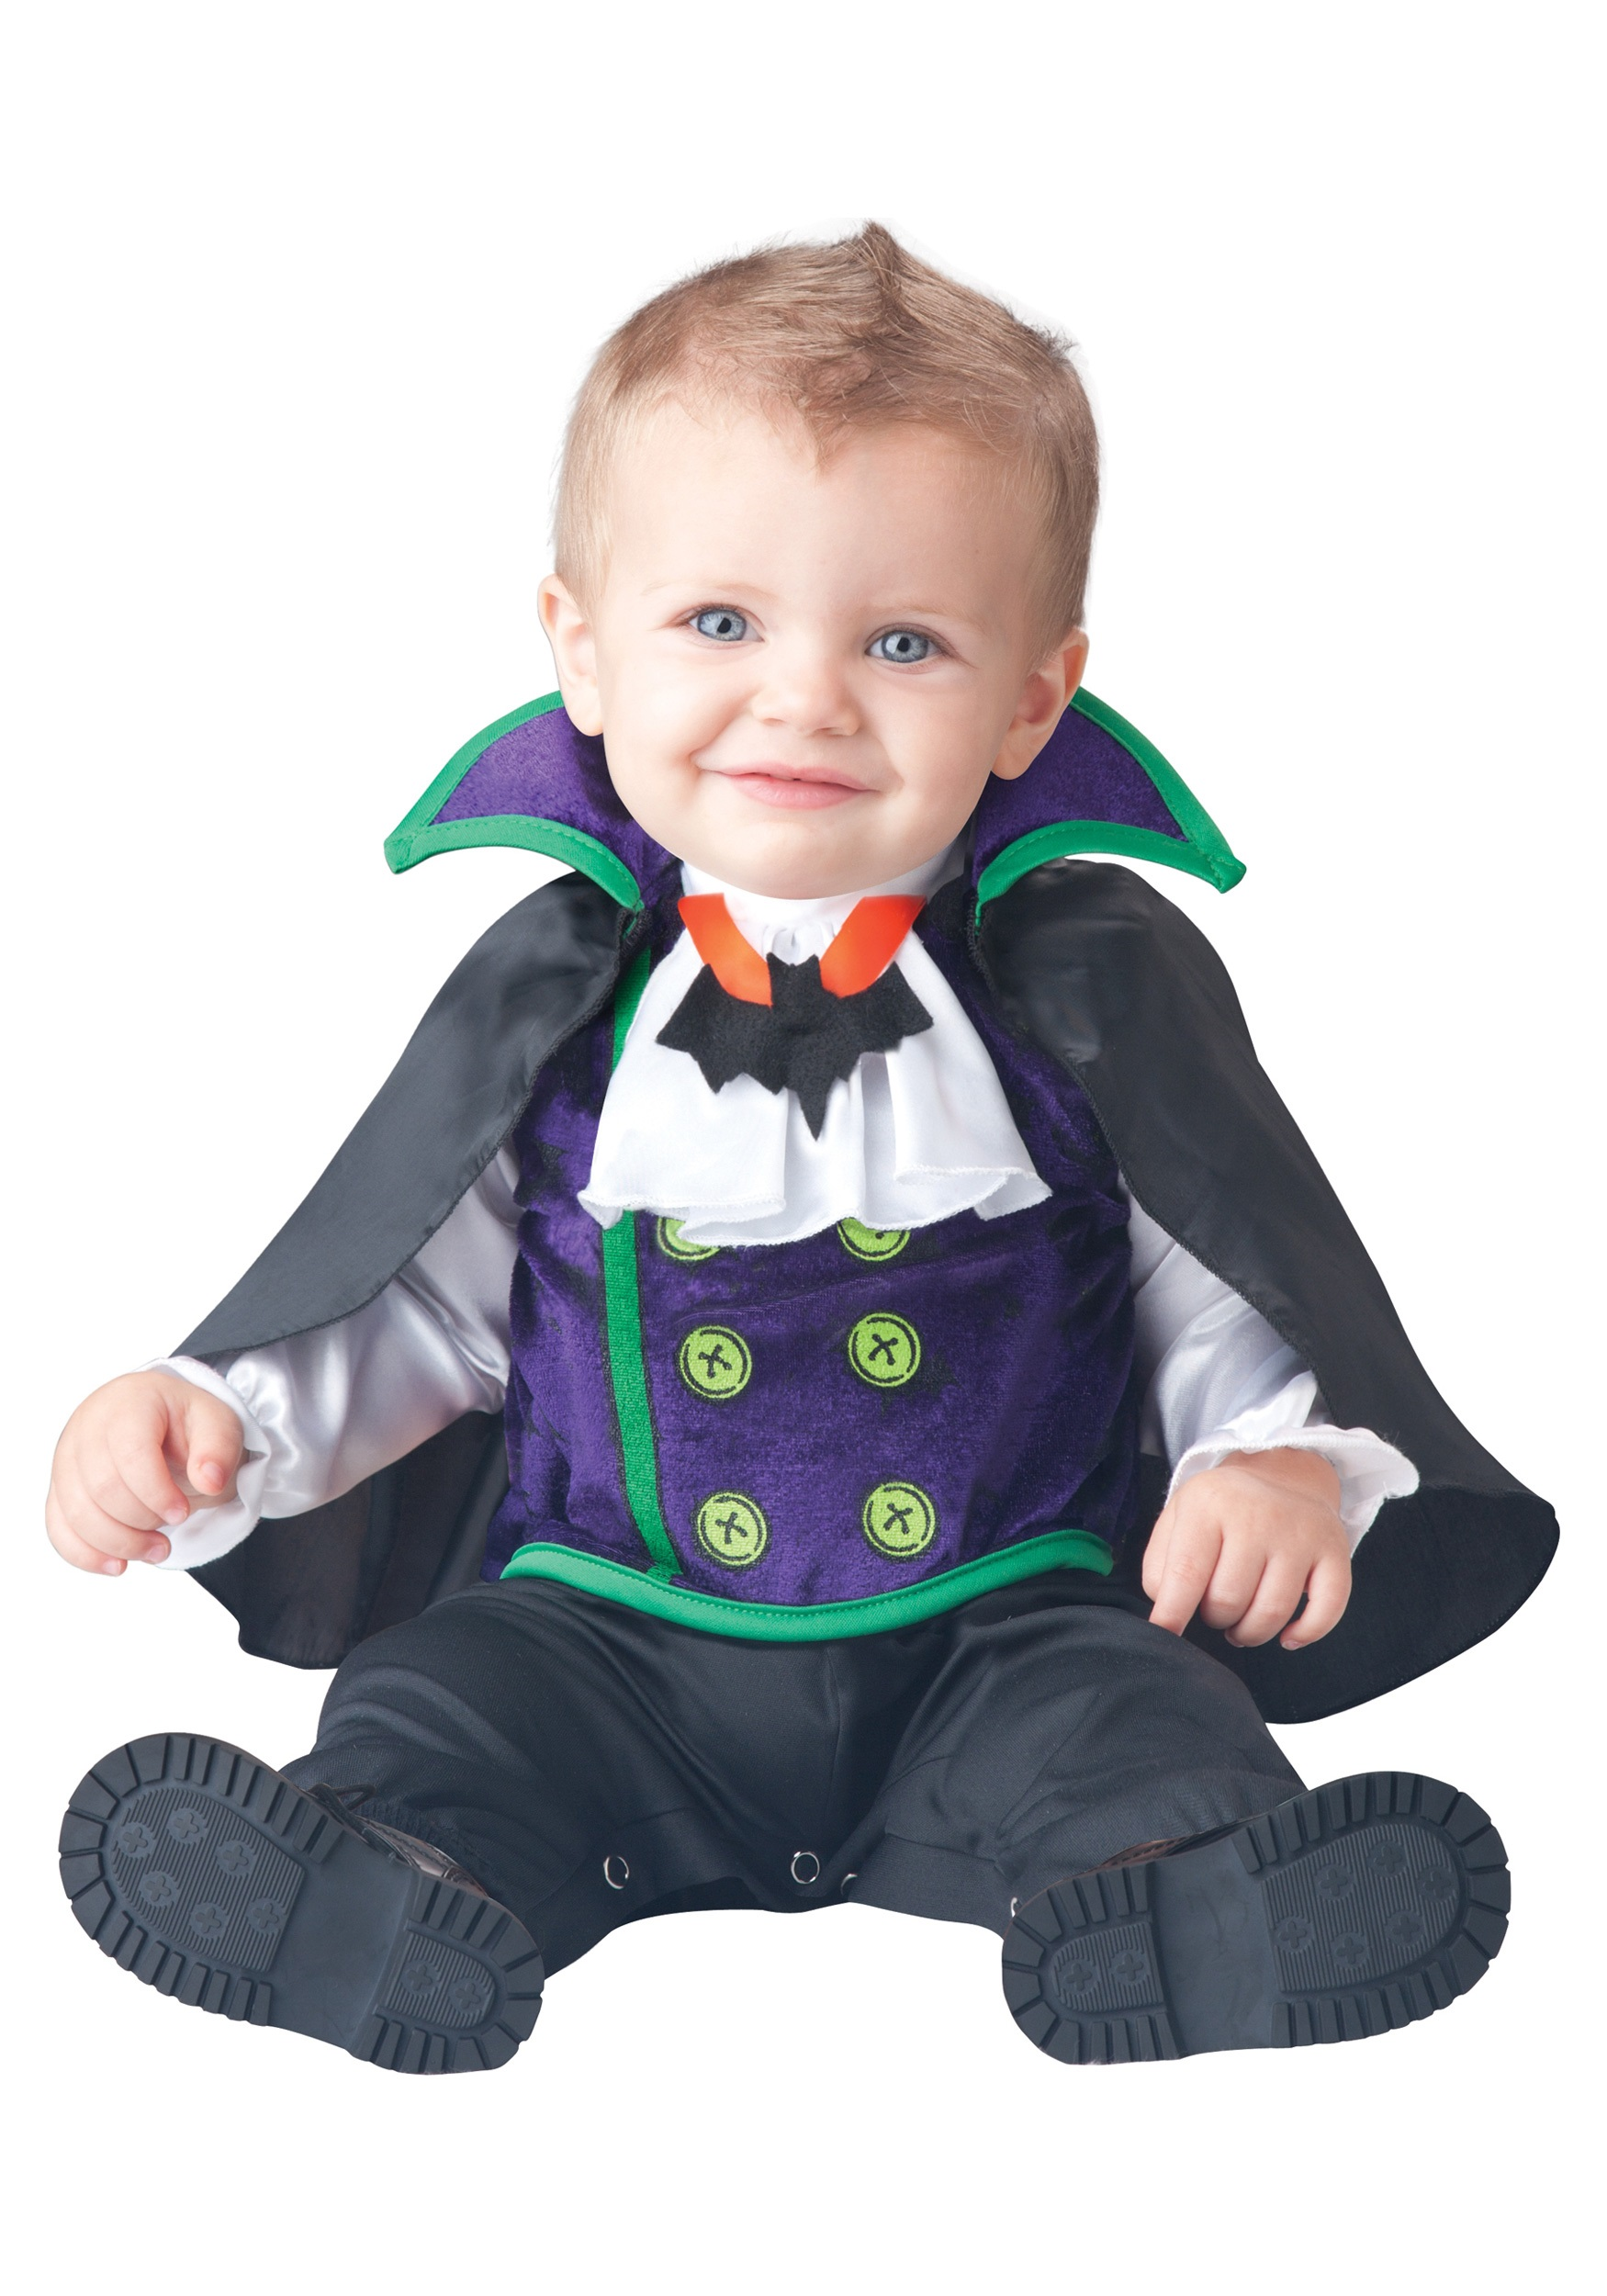 Count Cutie Costume For Baby